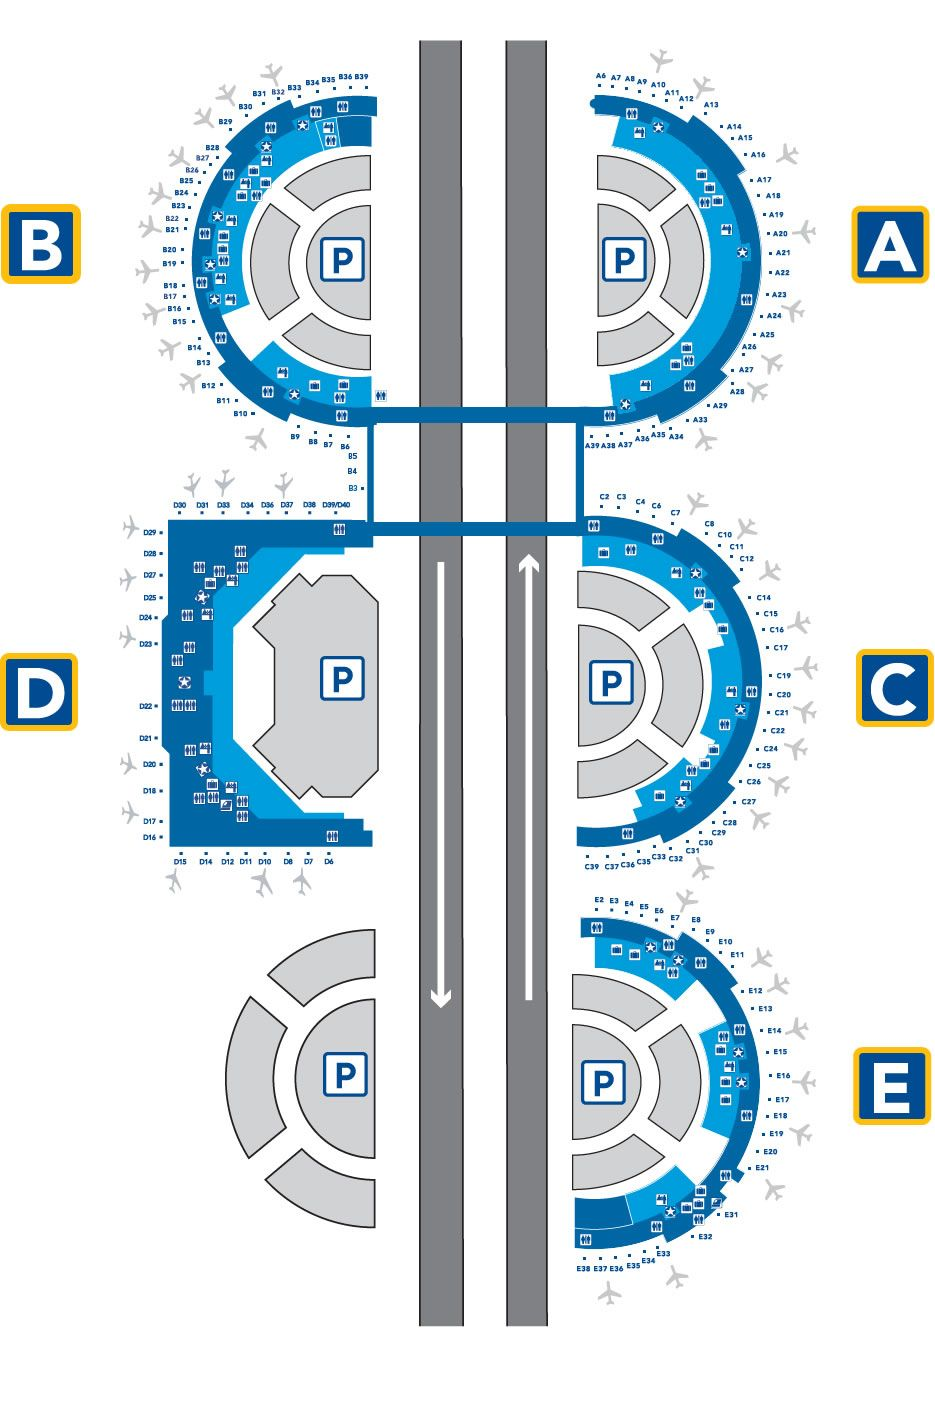 DFW Airport Terminal Layout. One of the easiest airport to navigate on